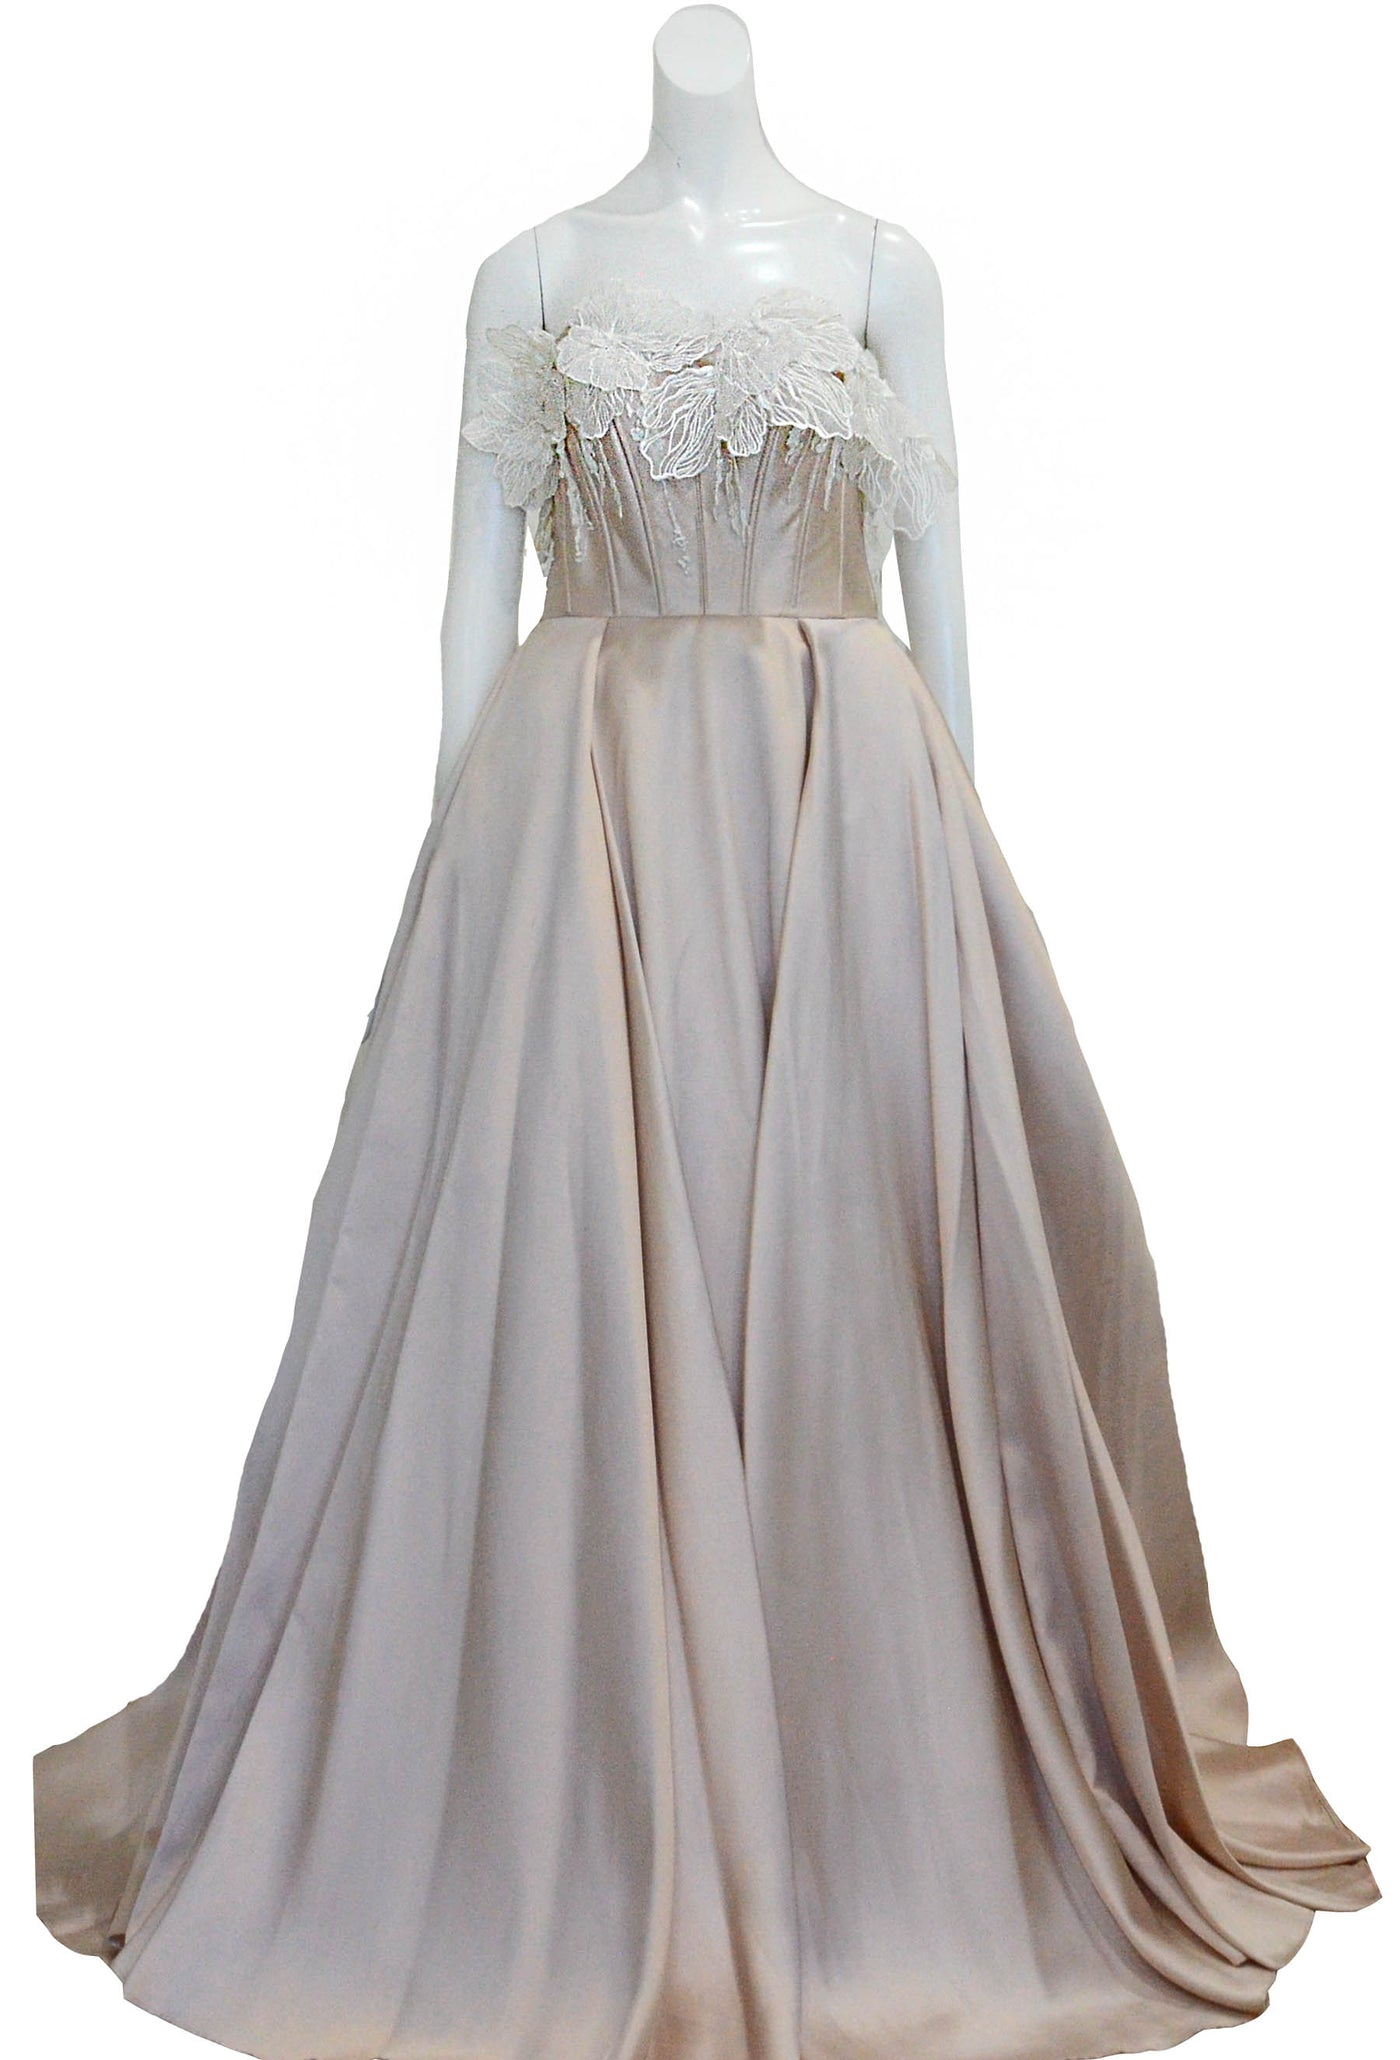 Buy : Adeline Esther - Strapless Satin Gown